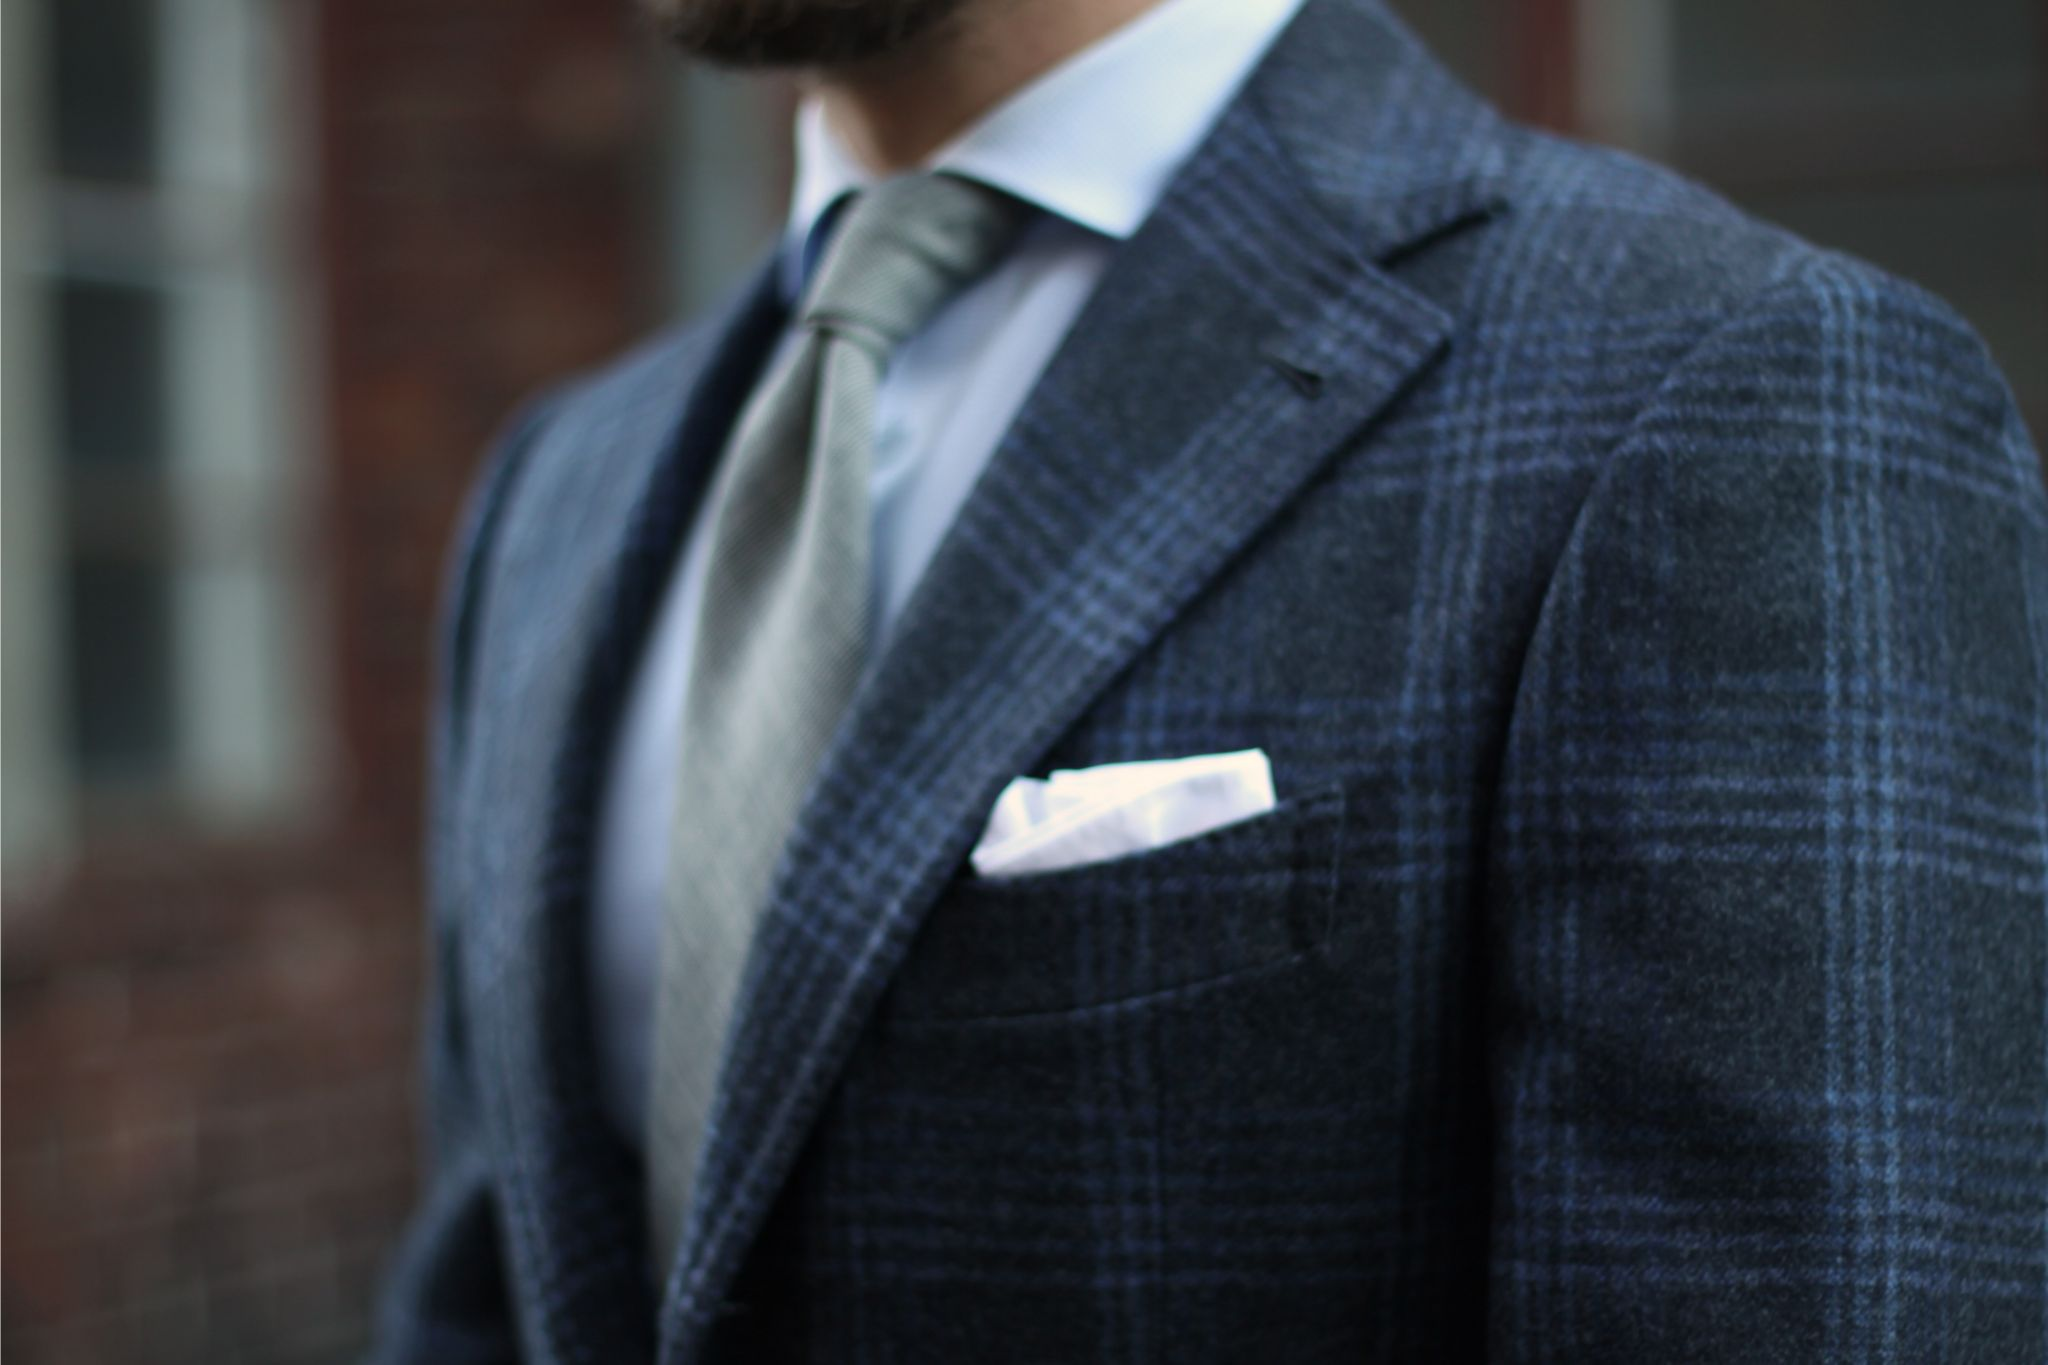 G.Abo Napoli suit details - gray suit with white pocket square